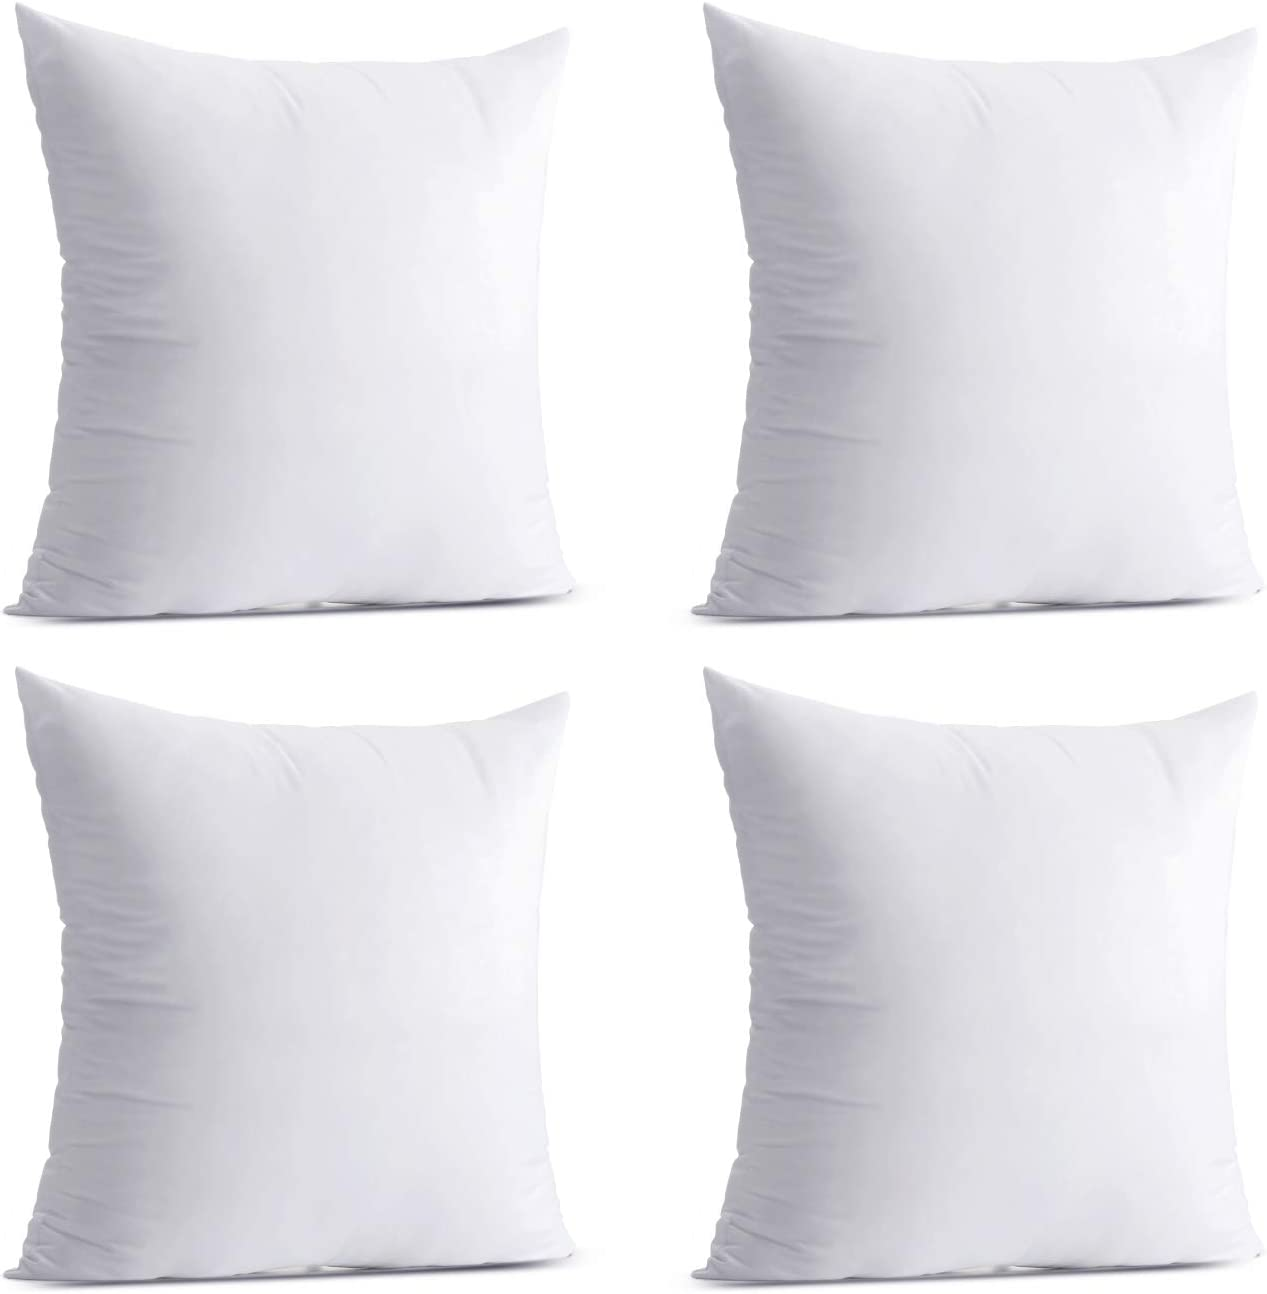 Calibrate Timing Throw Pillow Inserts, 4 Packs Hypoallergenic Sq